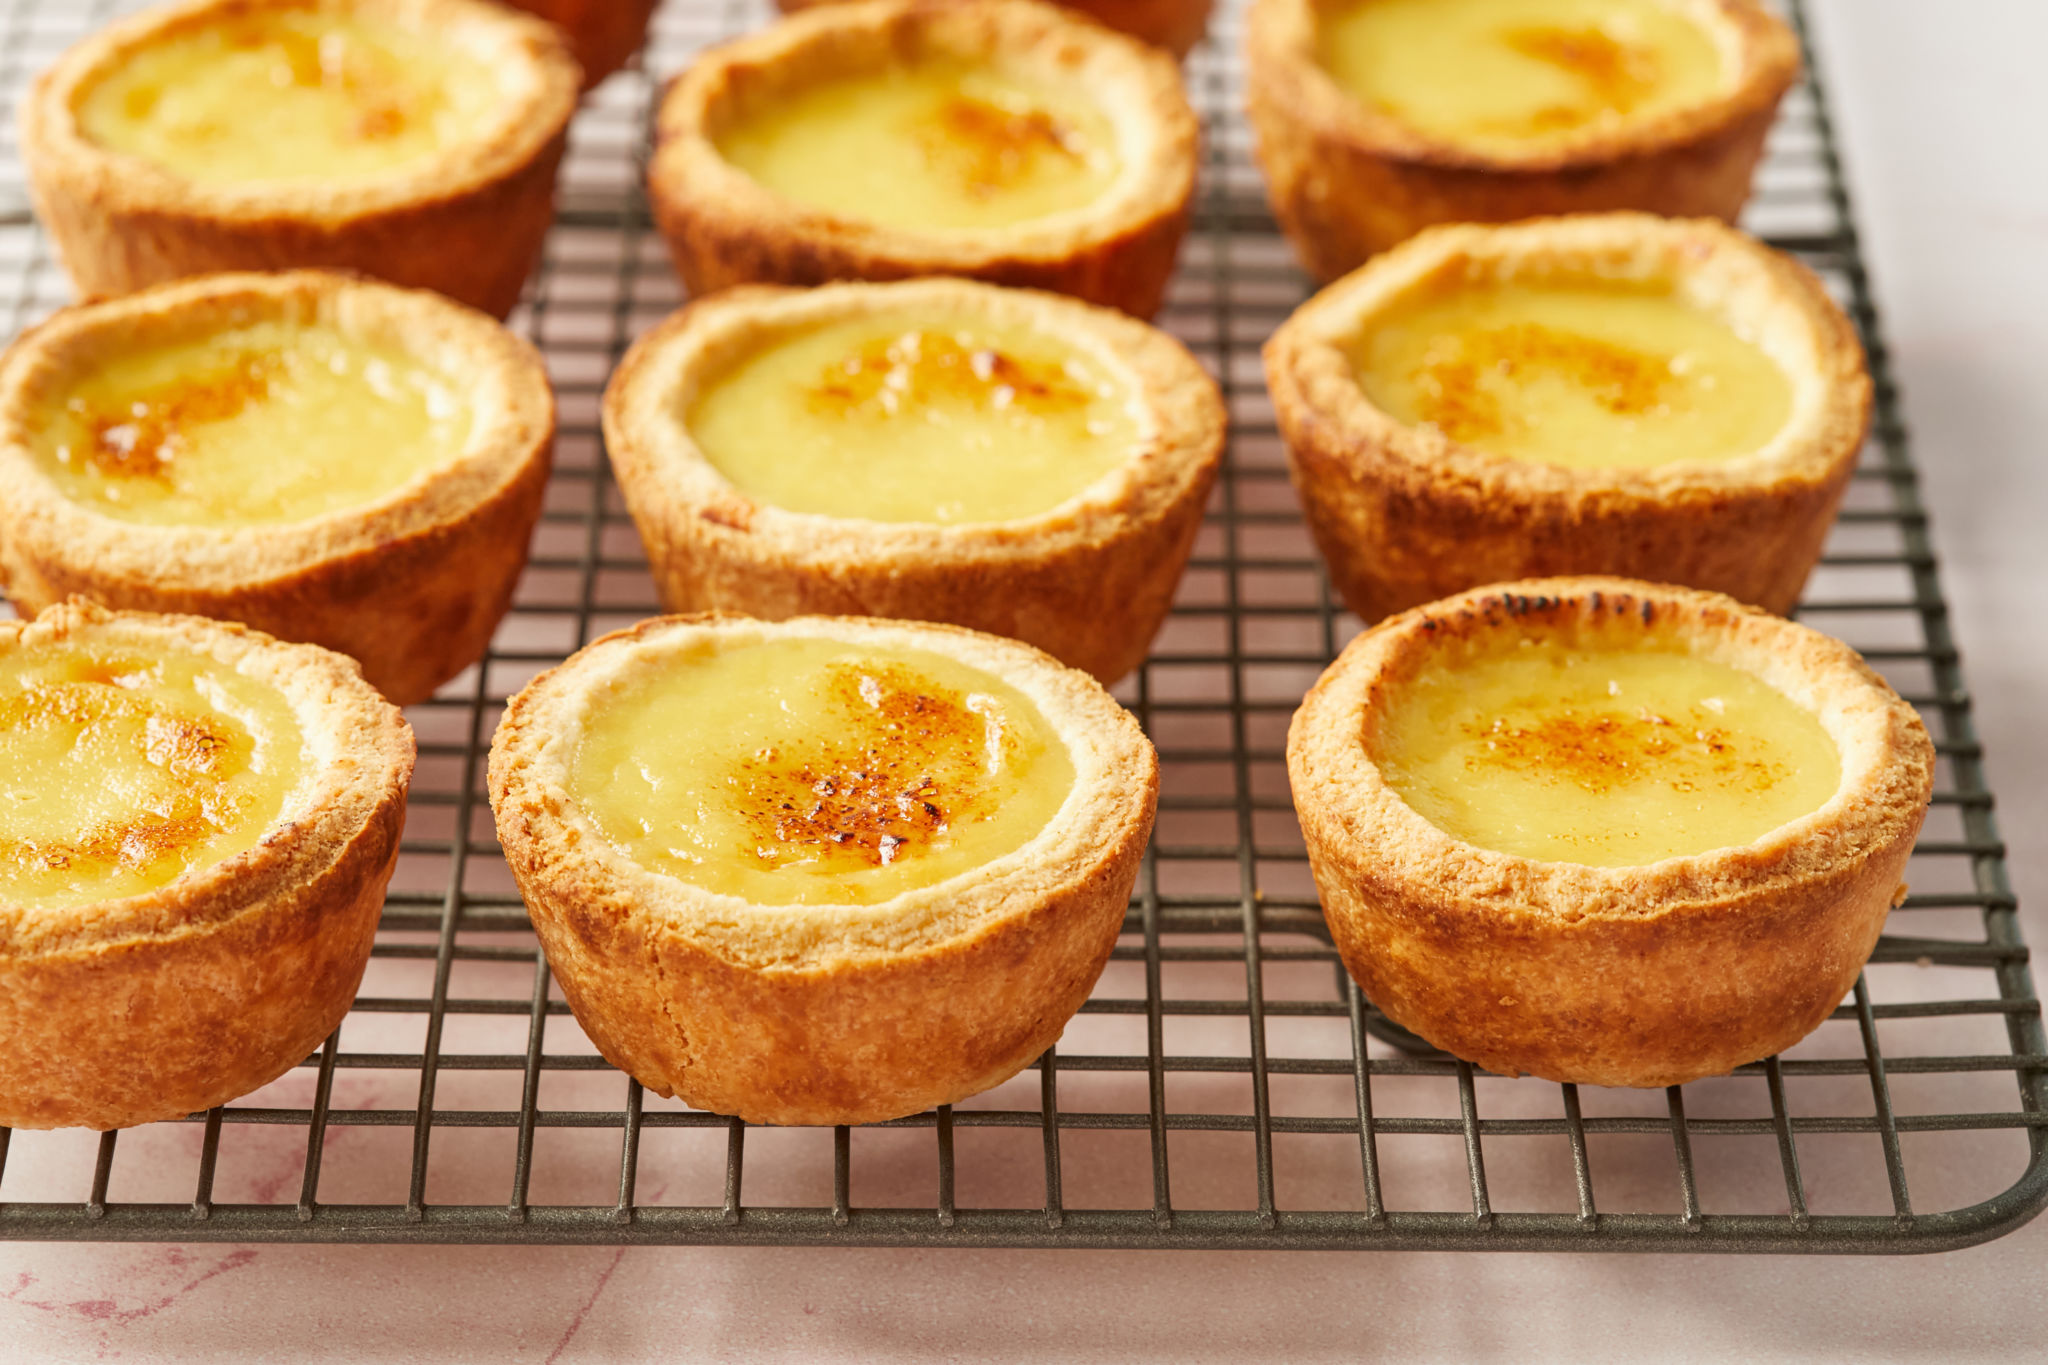 Rows of Portuguese Custard Tarts on a wire rack.